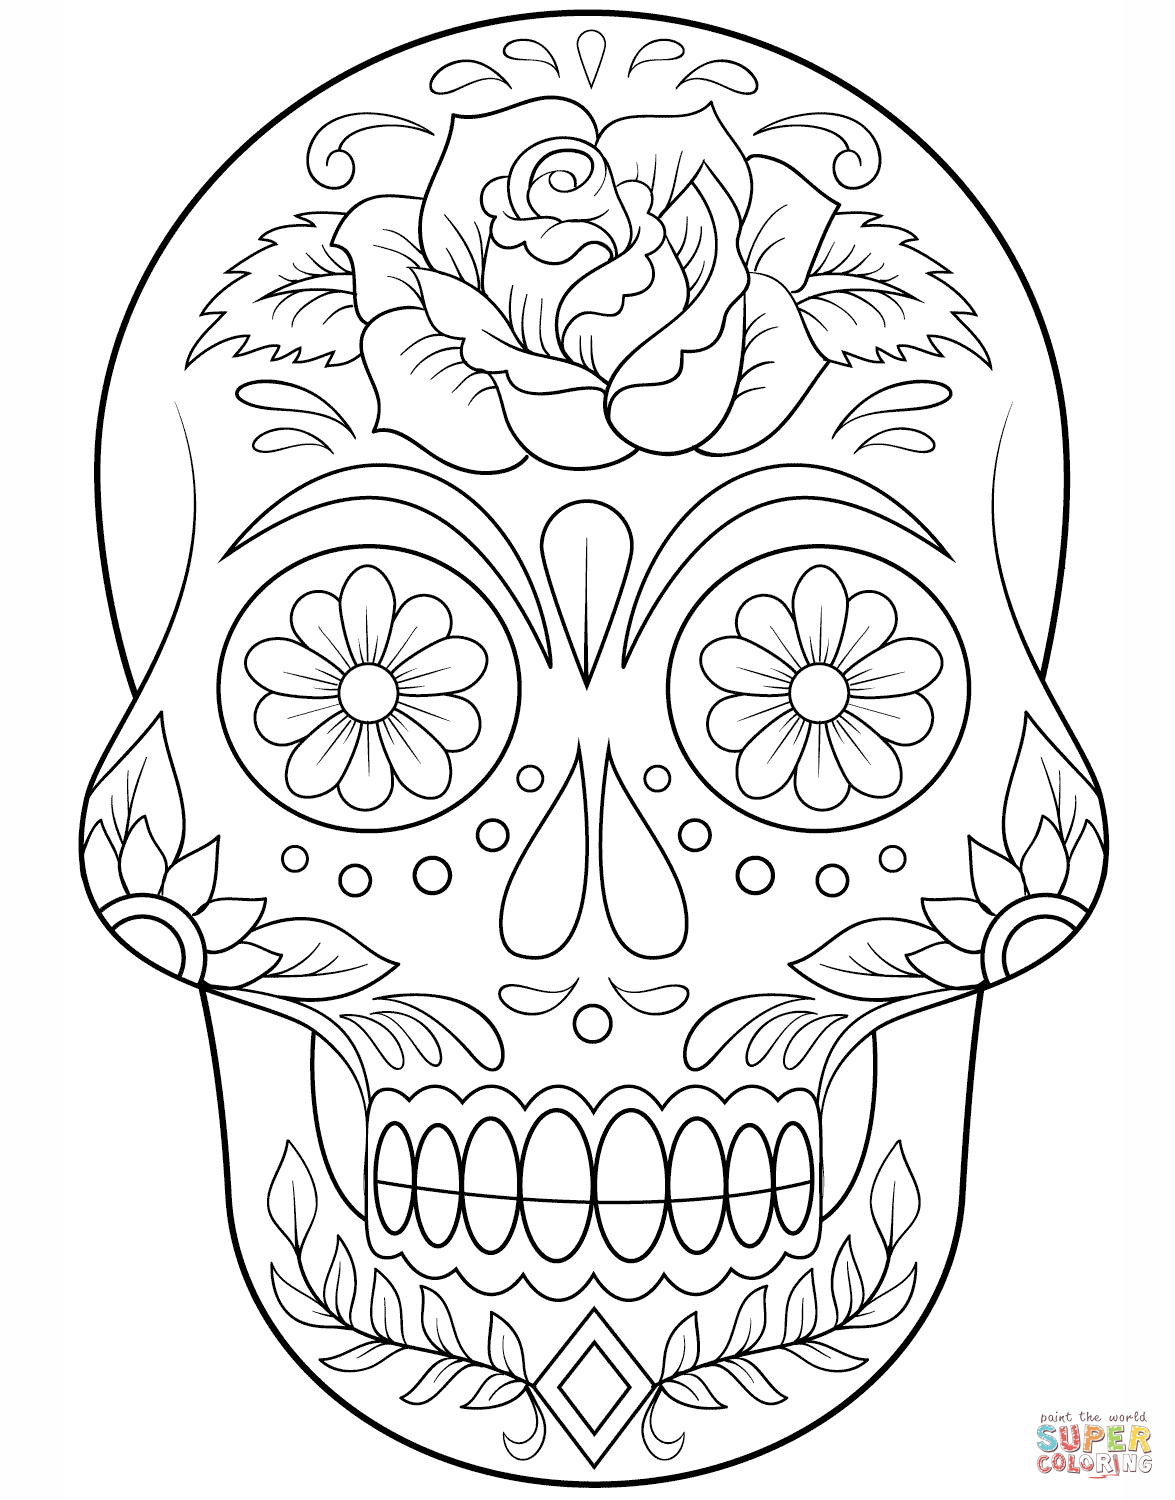 sugar skull with flowers coloring page from day of the dead category select from 24194 printable crafts of cartoons nature animals bible and many more - Sugar Skull Coloring Page